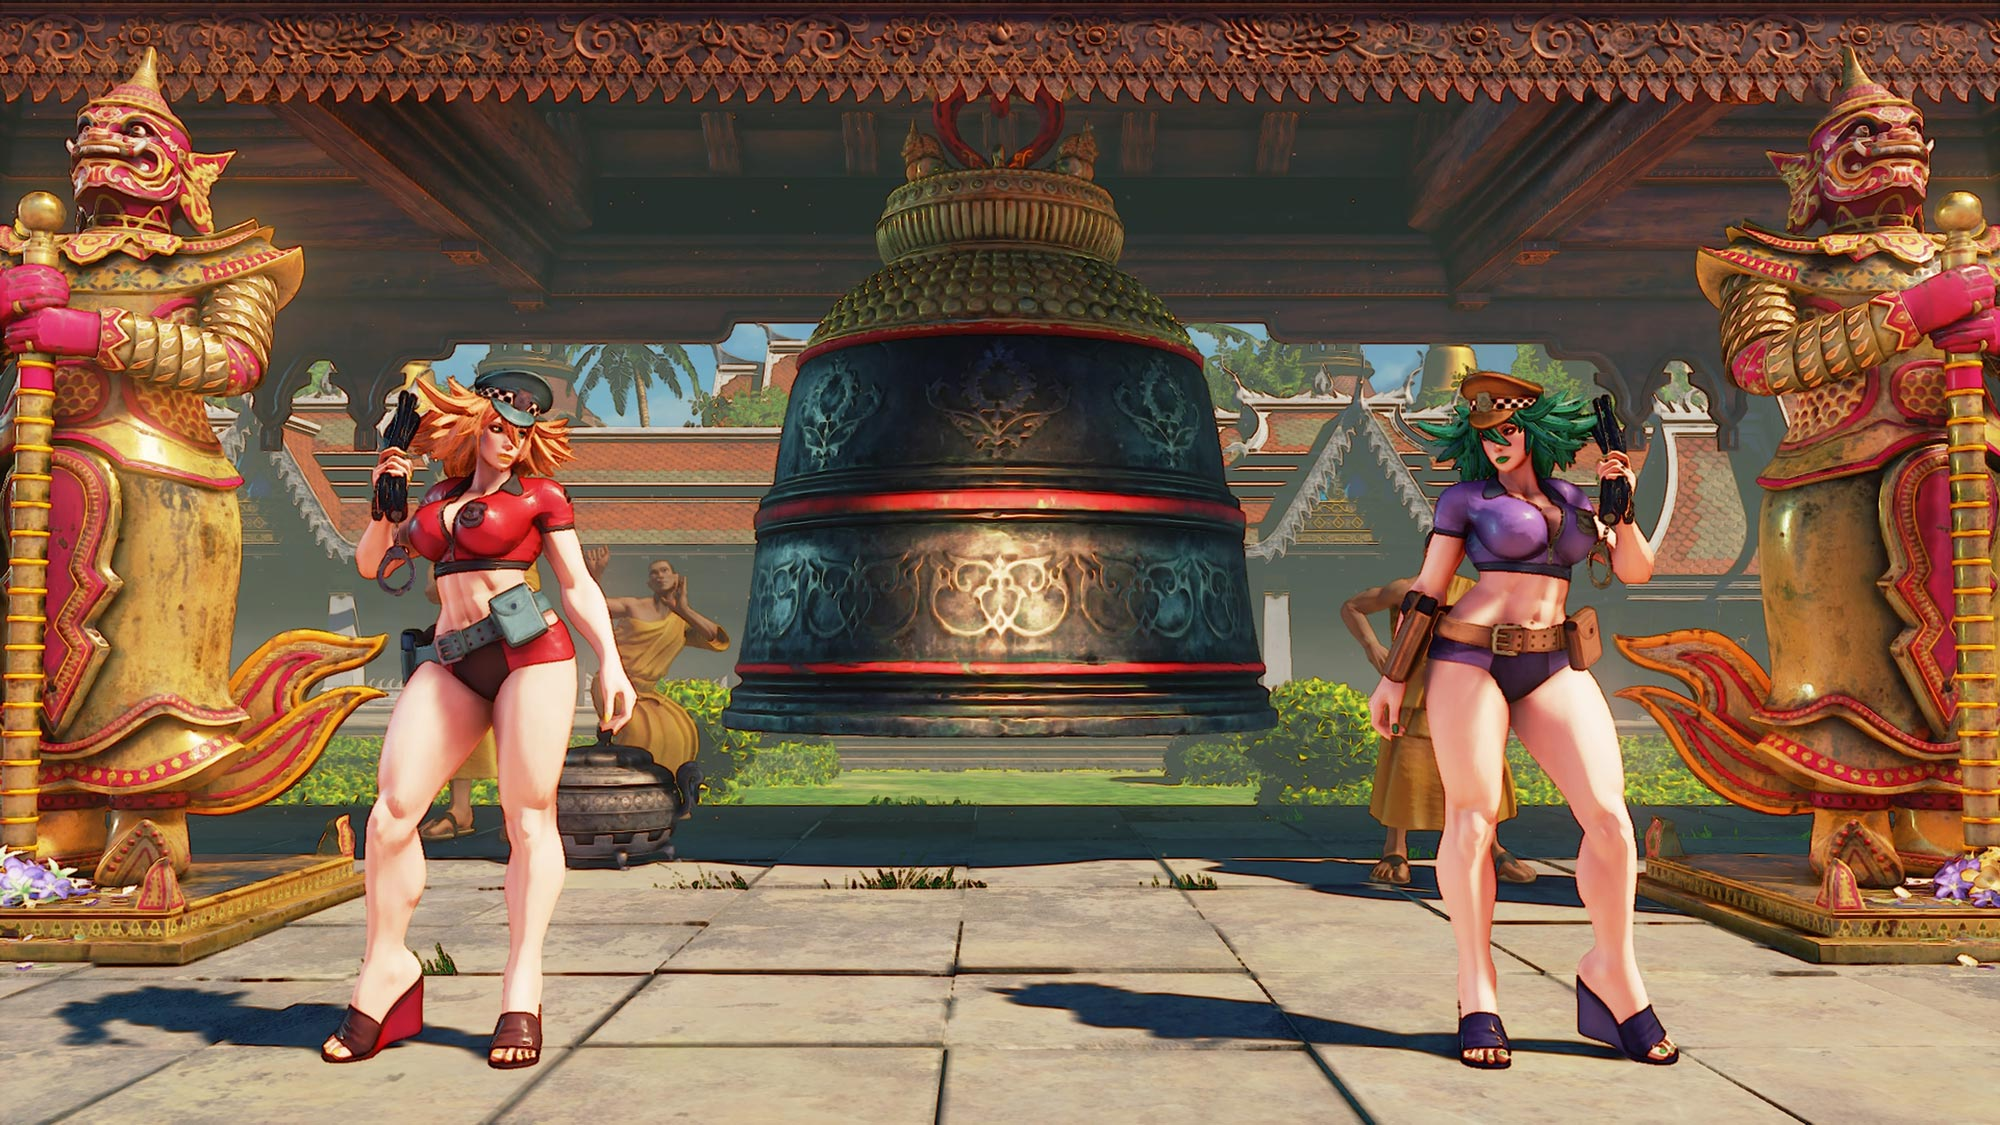 Poison's costume colors in Street Fighter 5 19 out of 22 image gallery